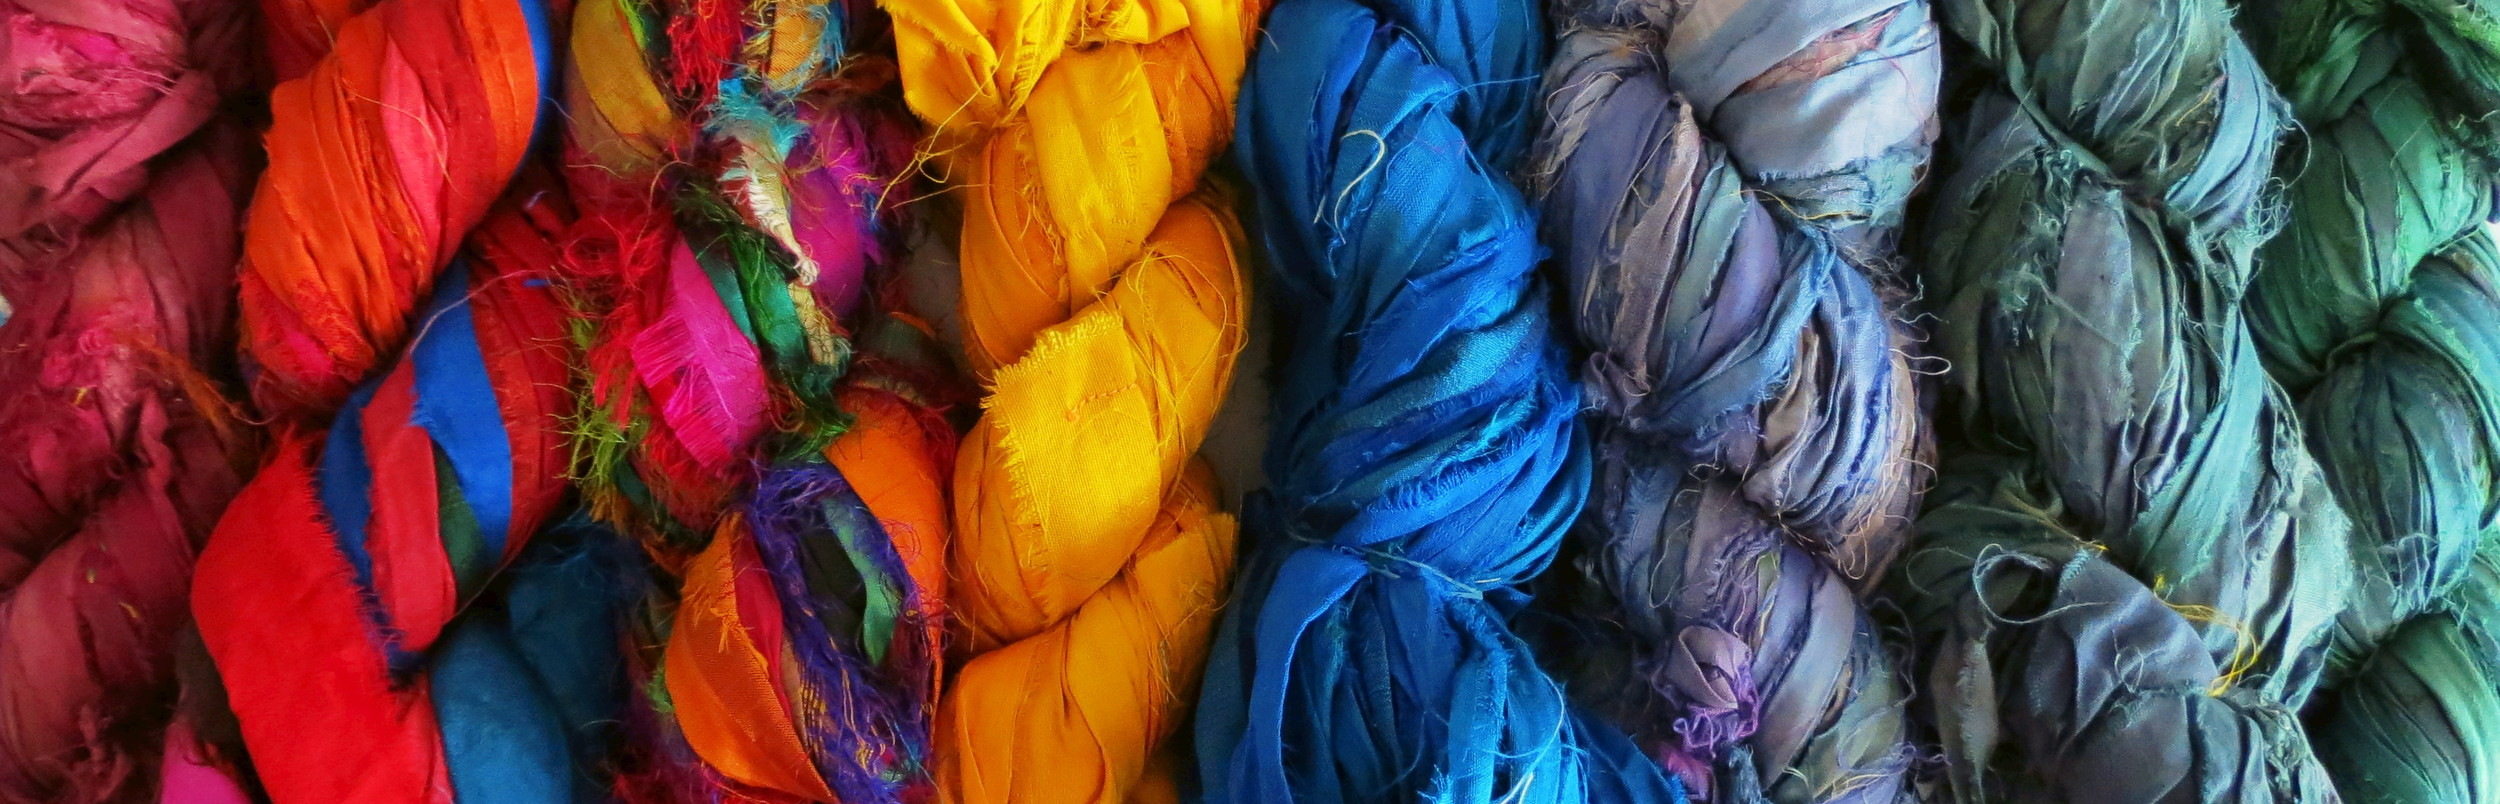 Recycled sari silk ribbon bundles from women cooperatives in India.